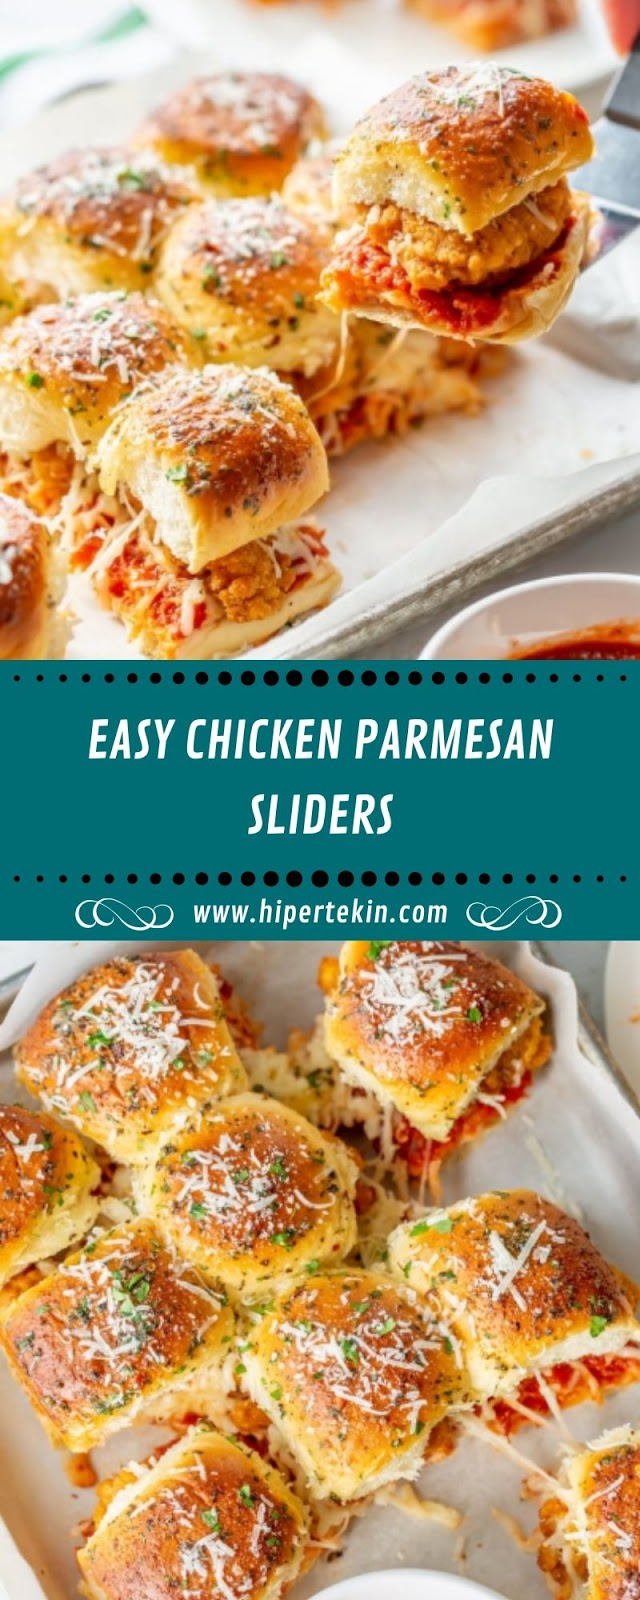 EASY CHICKEN PARMESAN SLIDERS